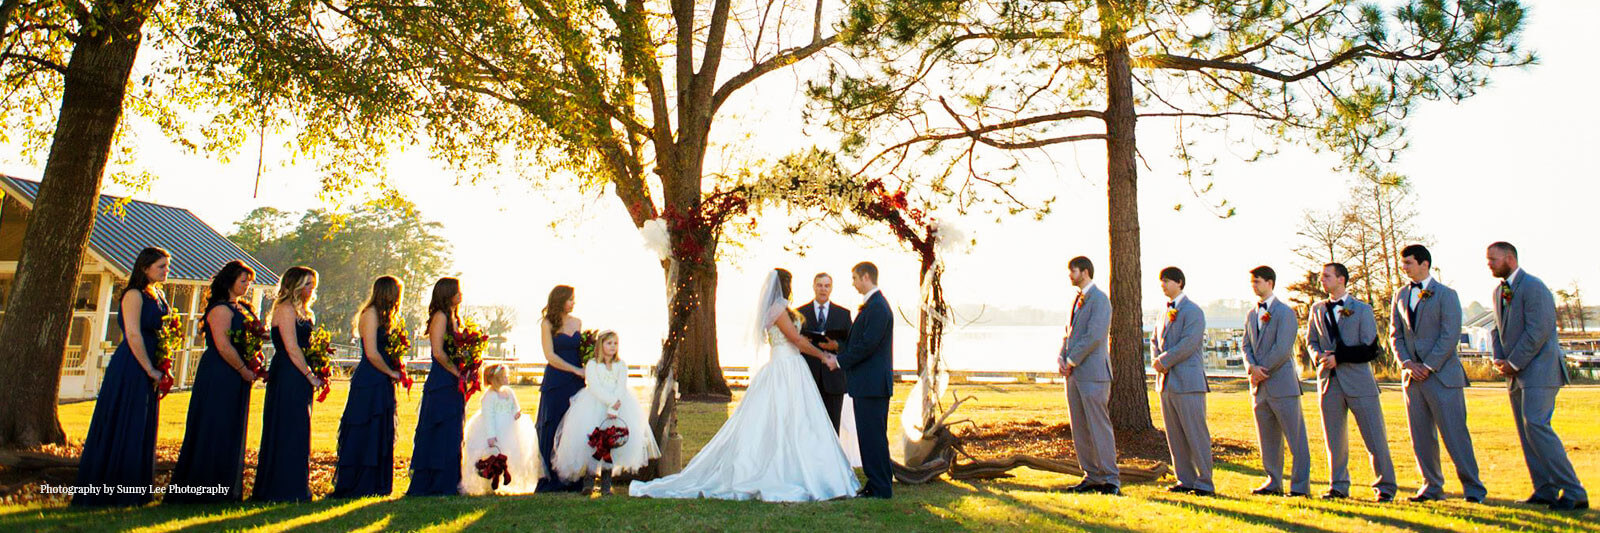 lake blackshear lake resort weddings weddings wedding gallery